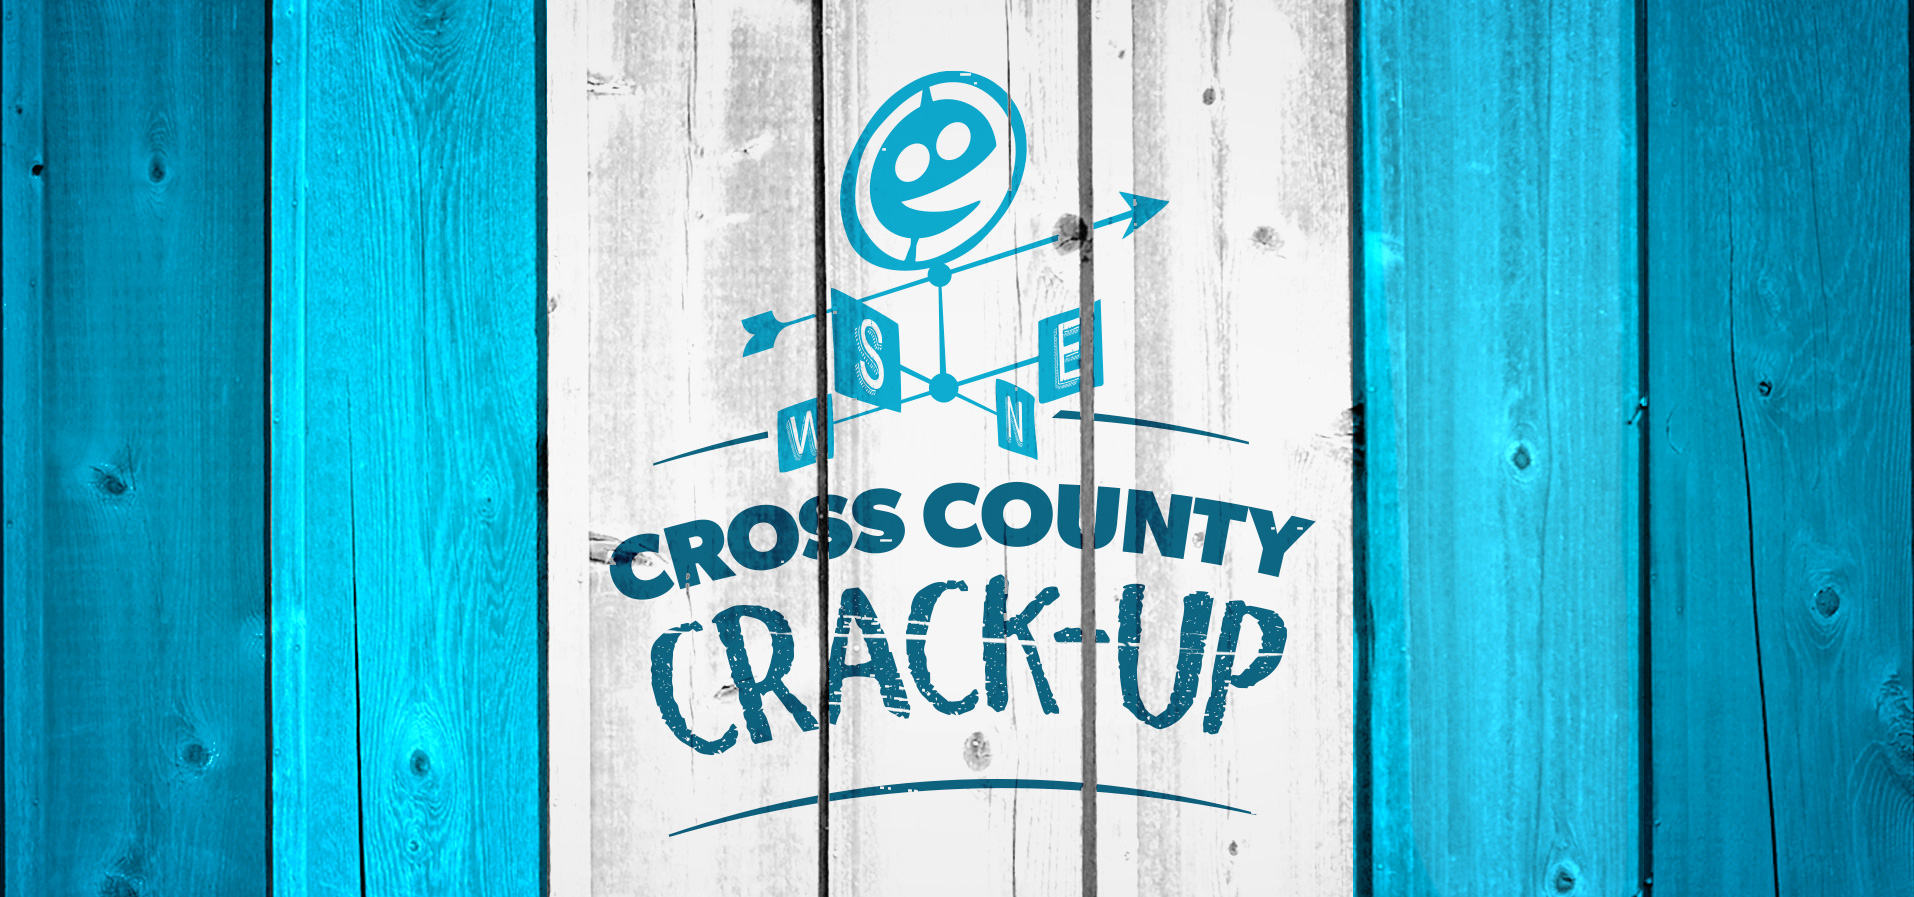 Image Description: Barn boards painted tonal blues and white featuring a logo treatment for Cross County Crack-up including a stylized happy face and a weather vain.